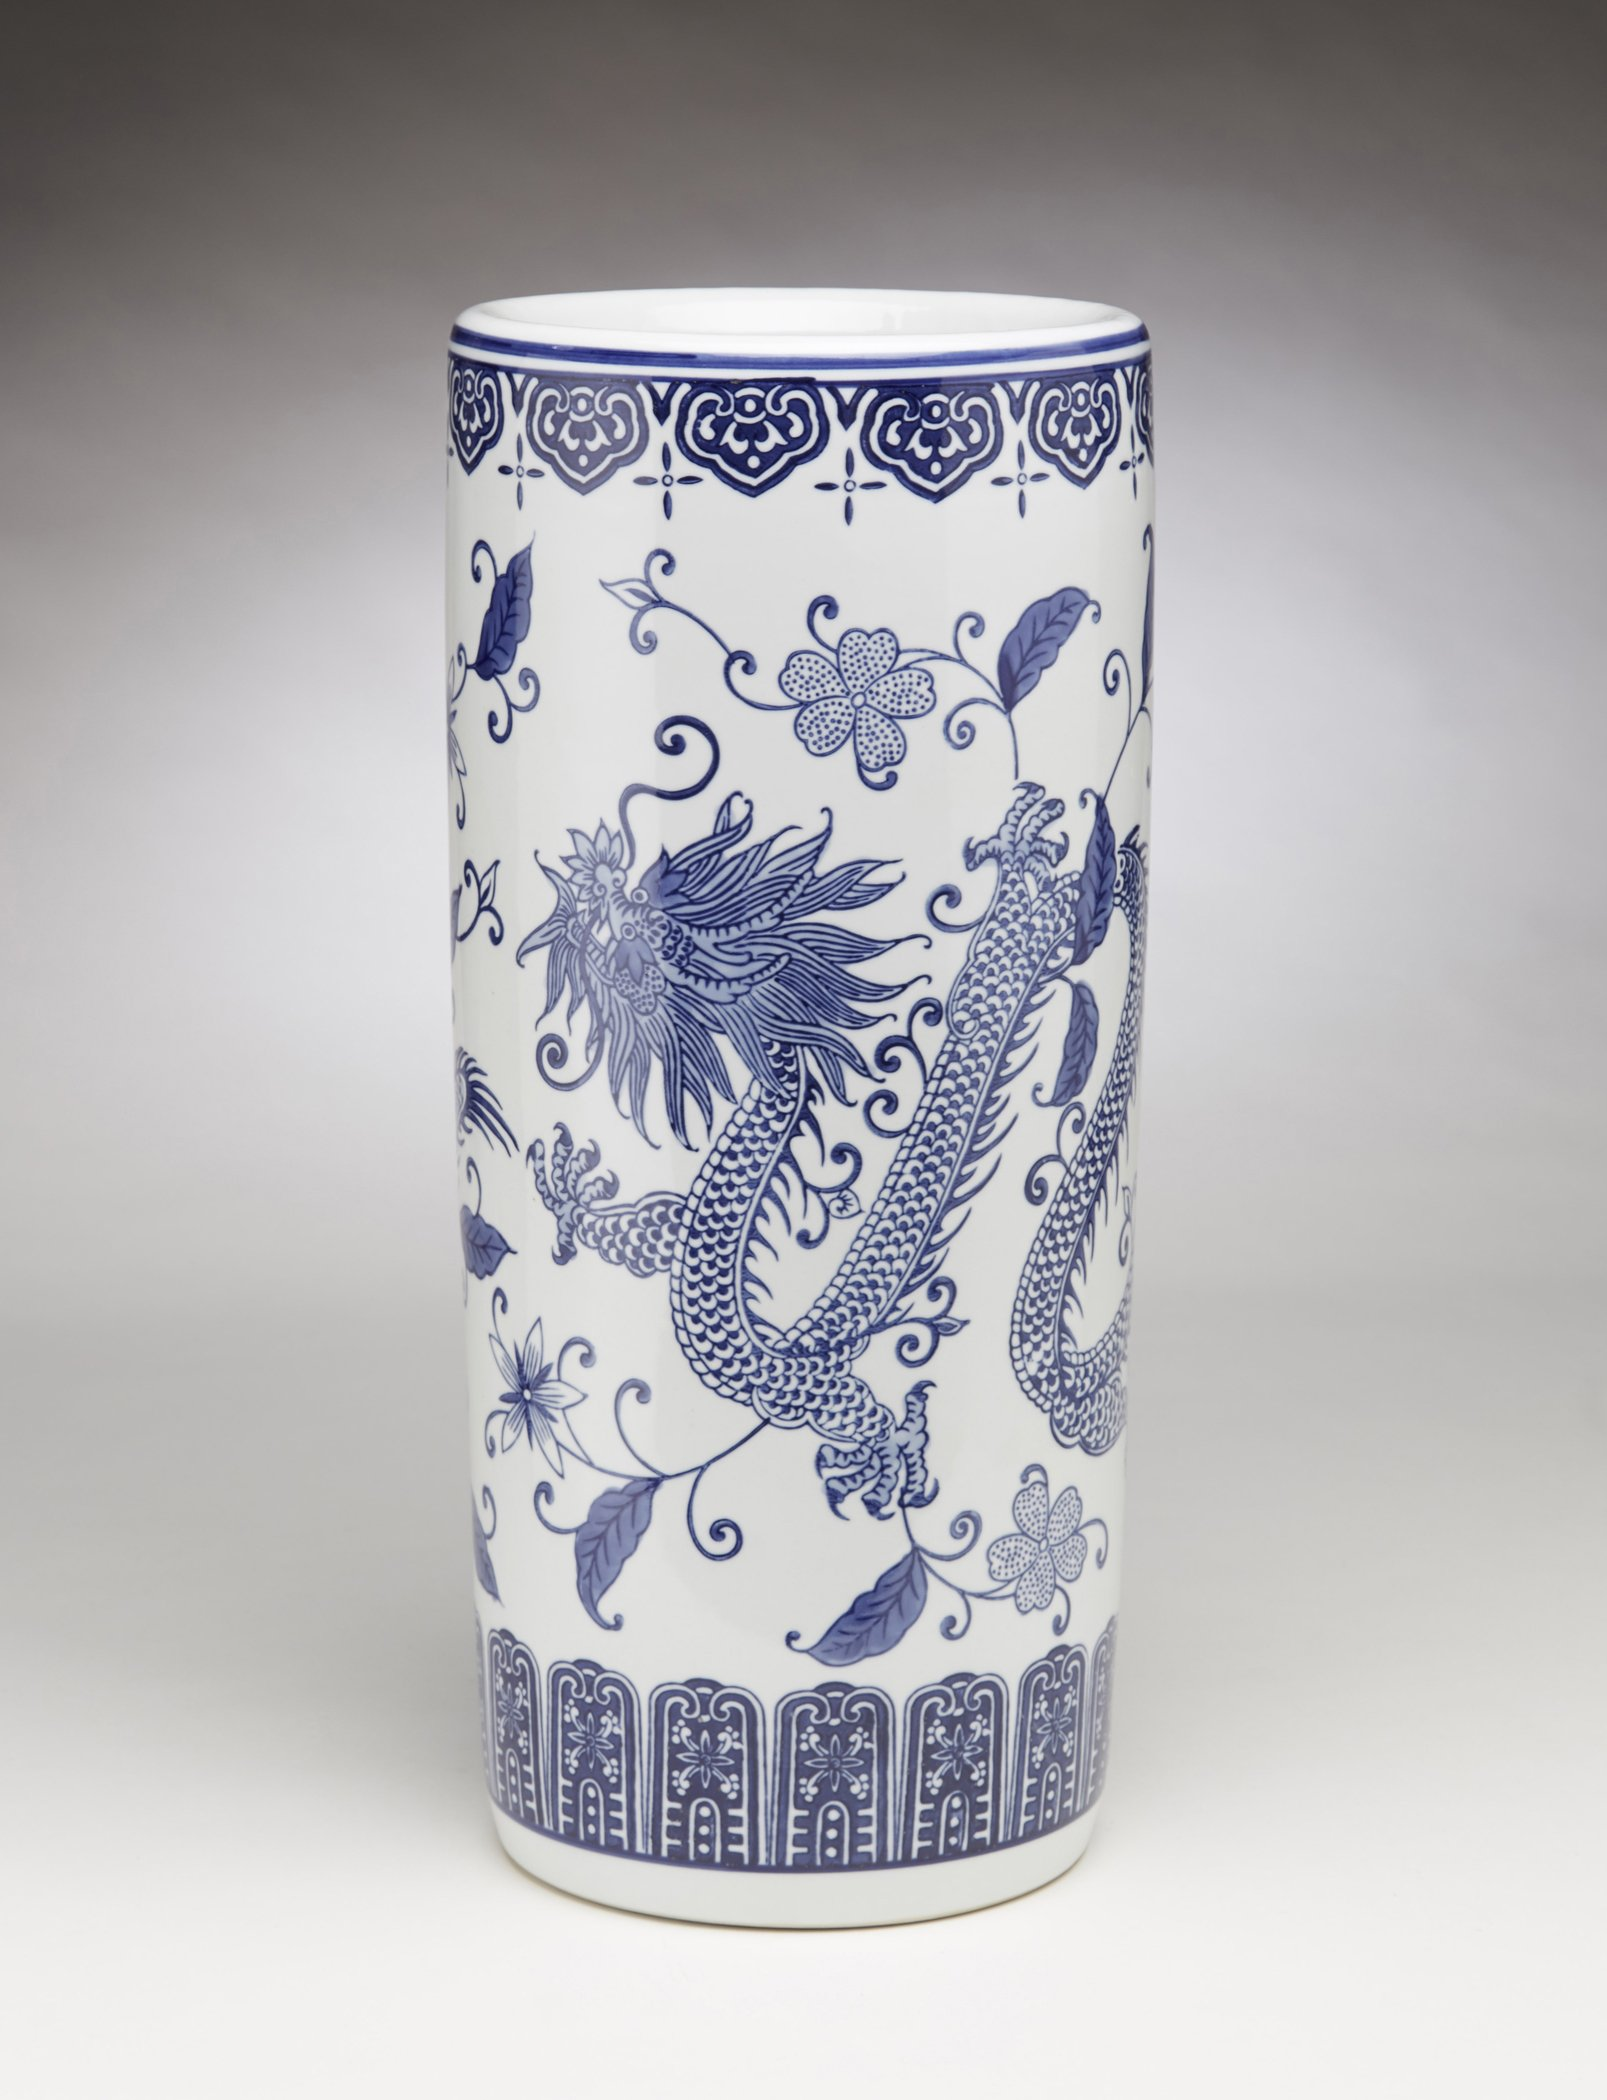 Porcelain Free Standing Umbrella Racks Aa Importing 59825 Umbrella Stand 18 In Dragon Pattern 8 X 18 X 8 Inches Blue Model # 59825